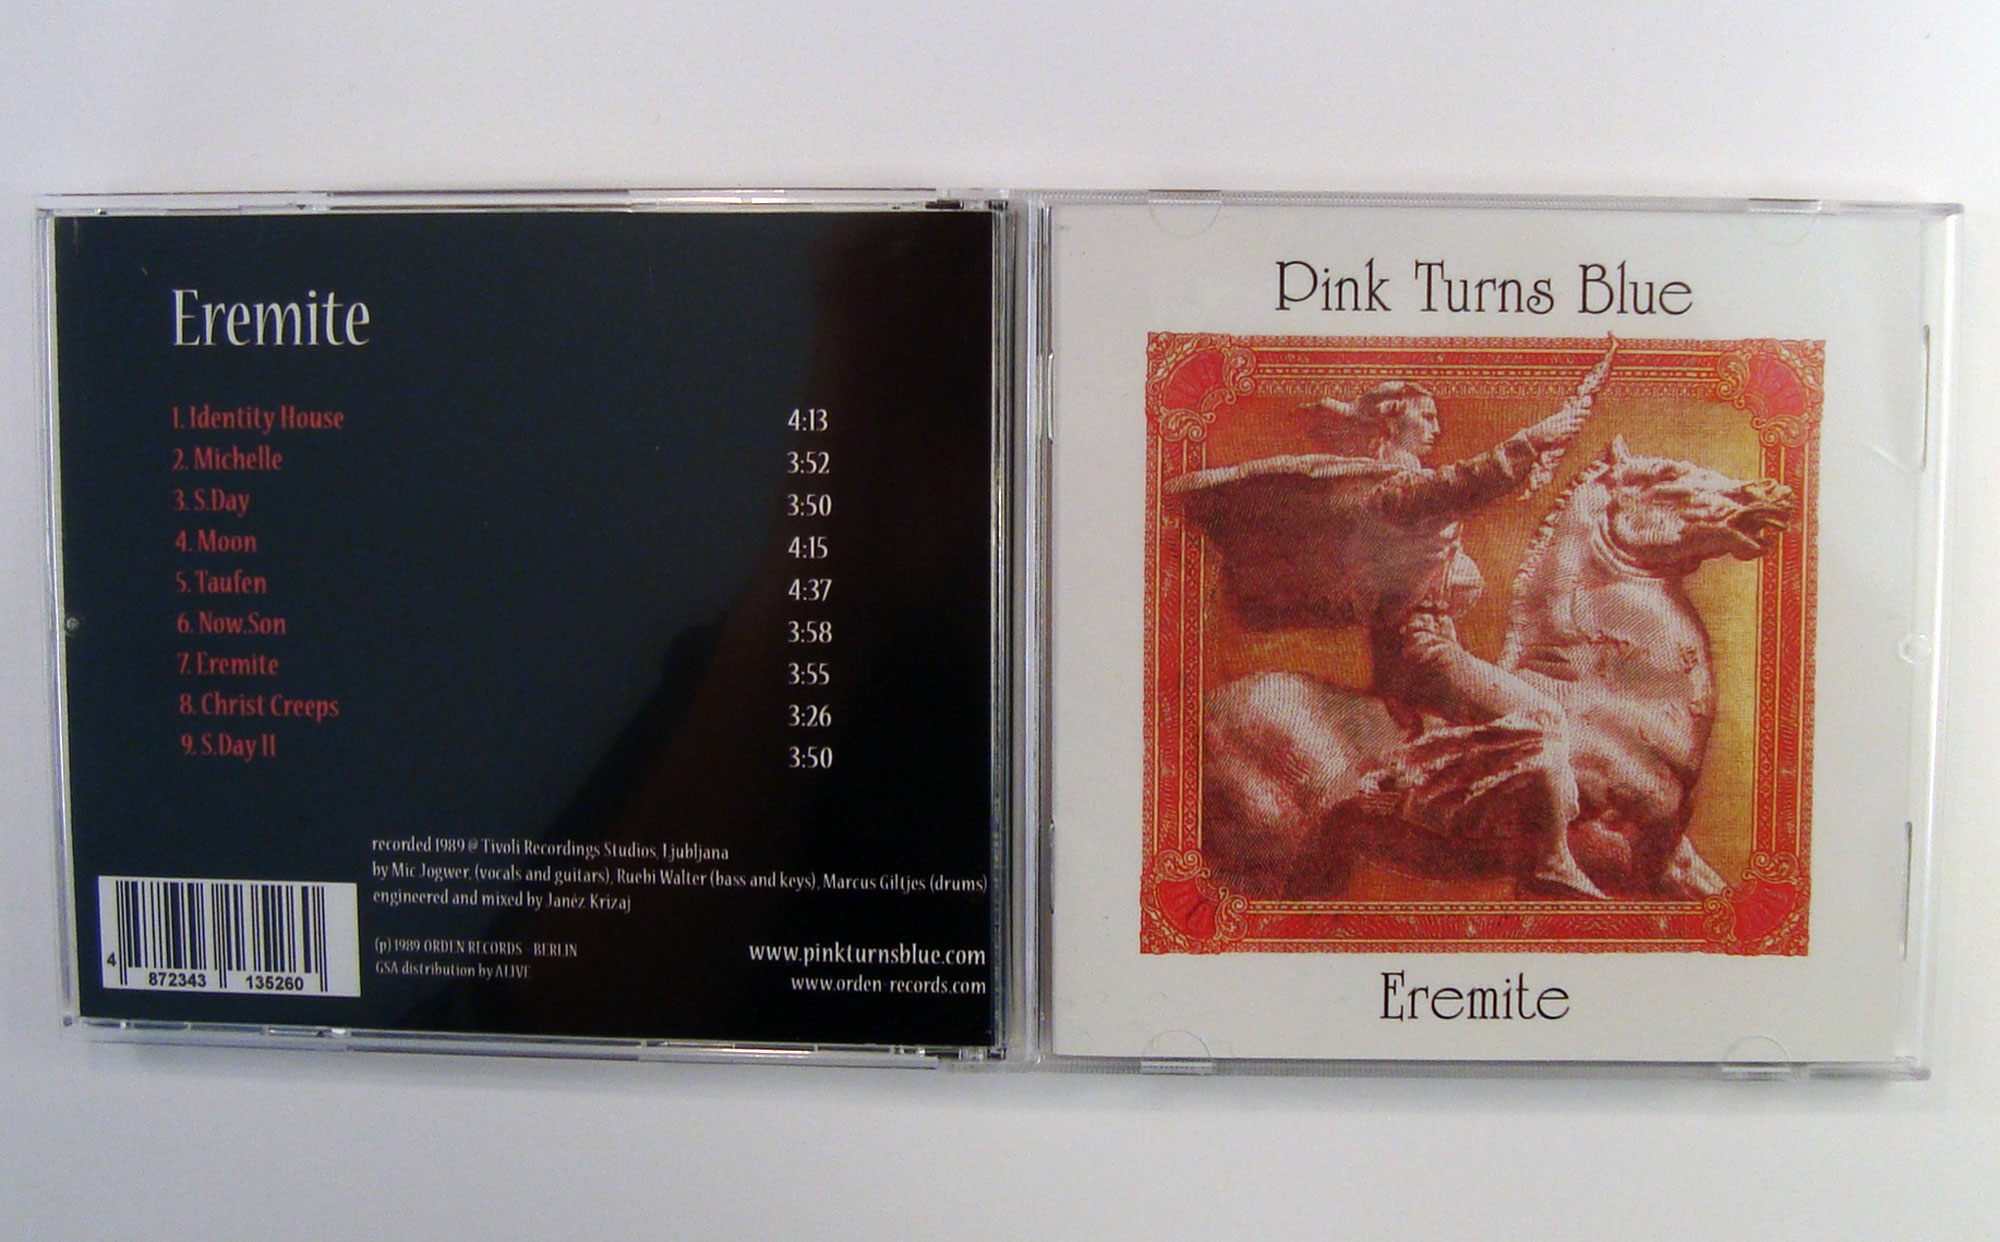 PINK TURNS BLUE - EREMITE - CD album - packshot - back